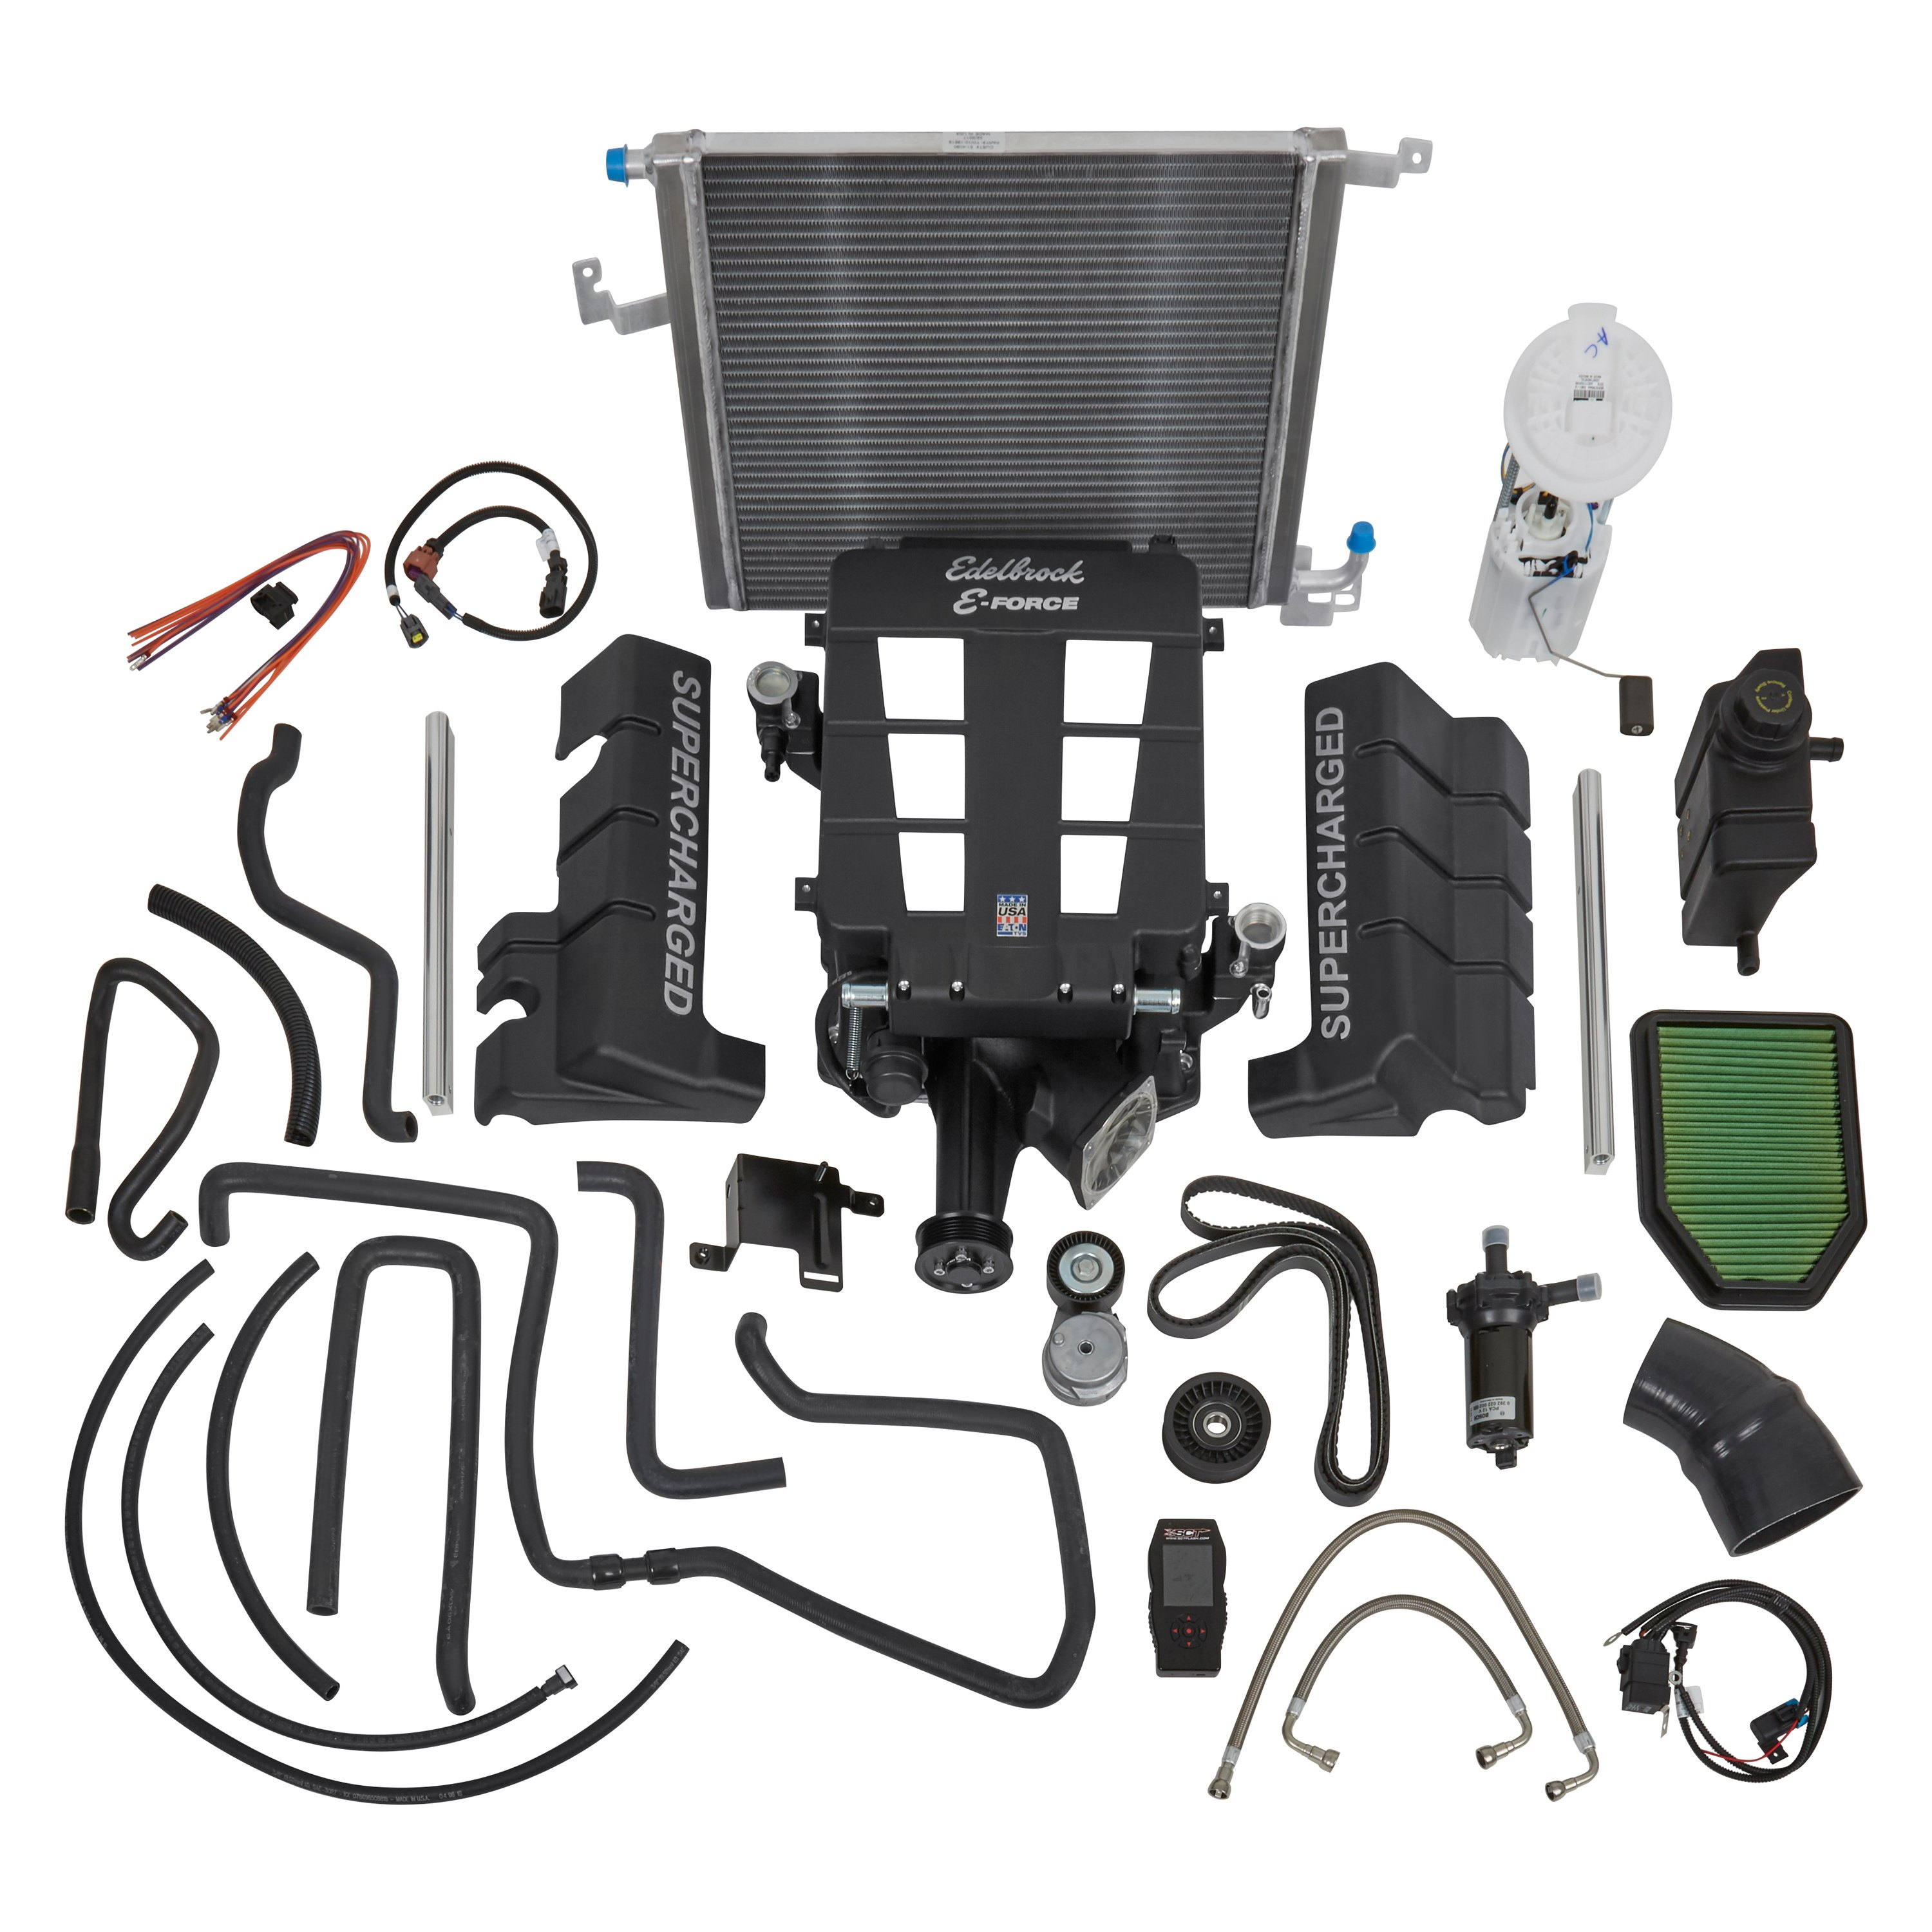 Edelbrock® 1534 - Stage 1 Street Supercharger System with Tuner